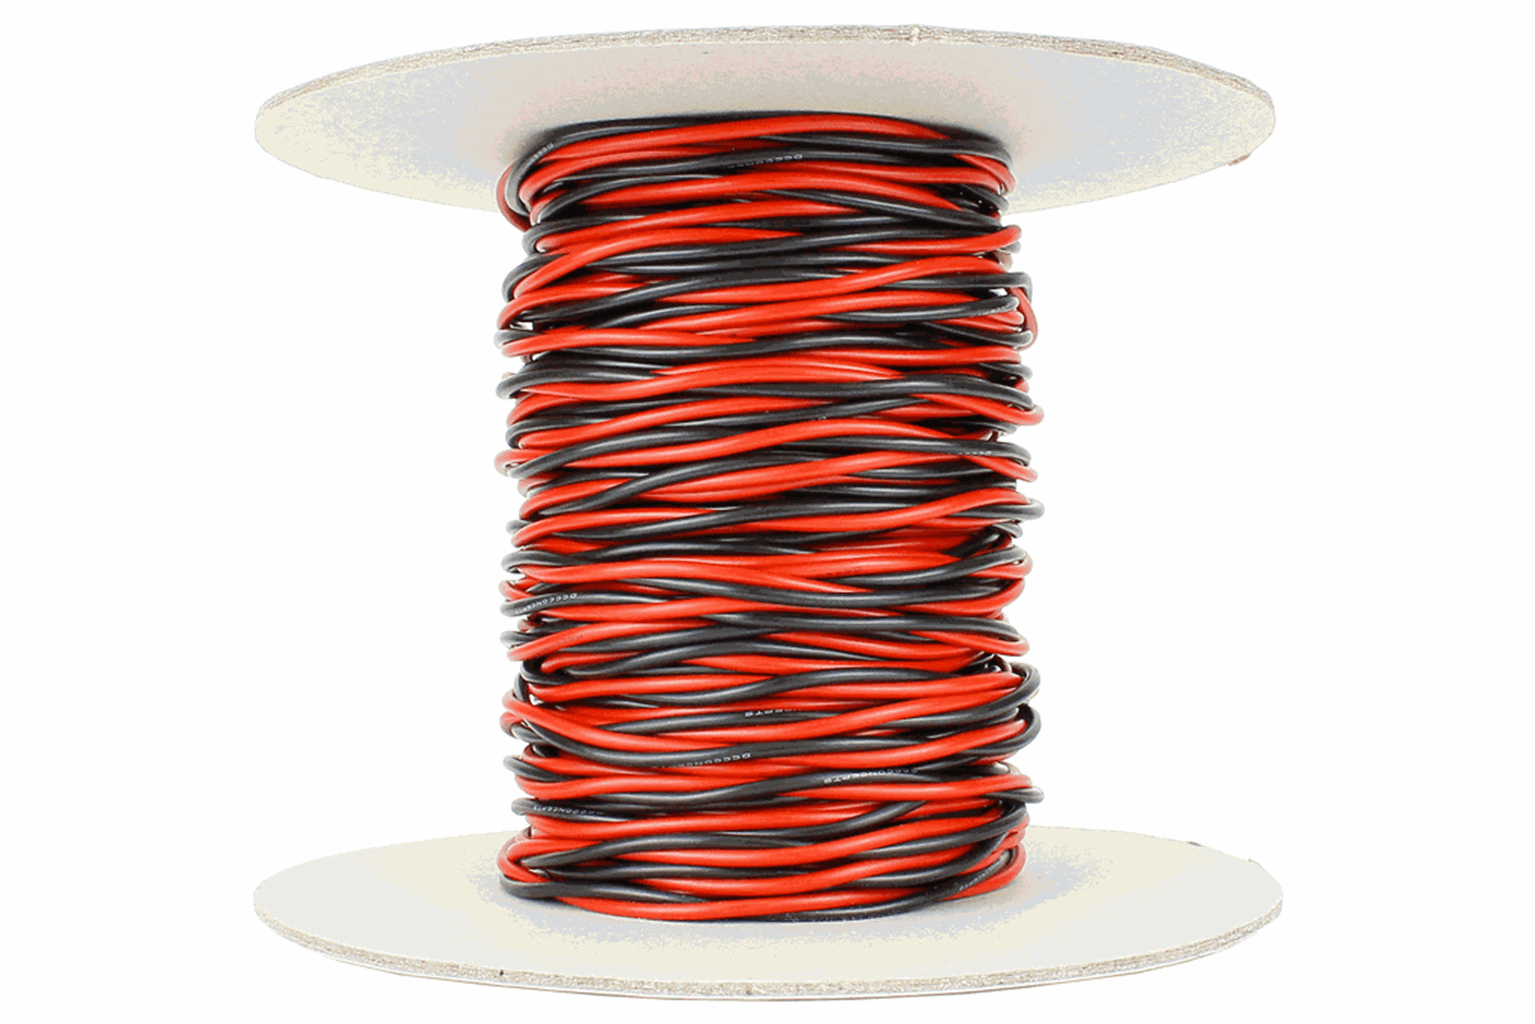 Twisted Bus Wire 25m of 1.5mm (15g) Twin Red/Black